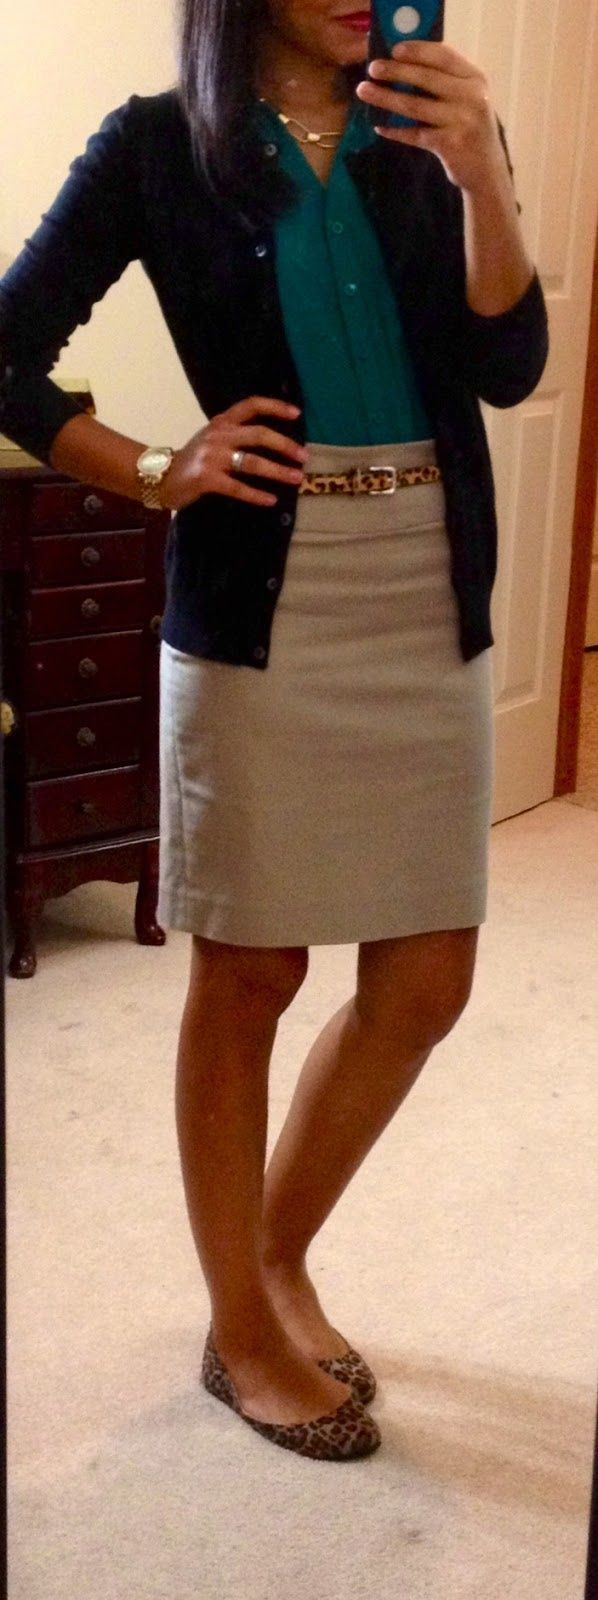 Business Casual - Skirts/Dresses - Imgur @ http://comicsqueers.tumblr.com #clothing #apparel #casual dresses #dress